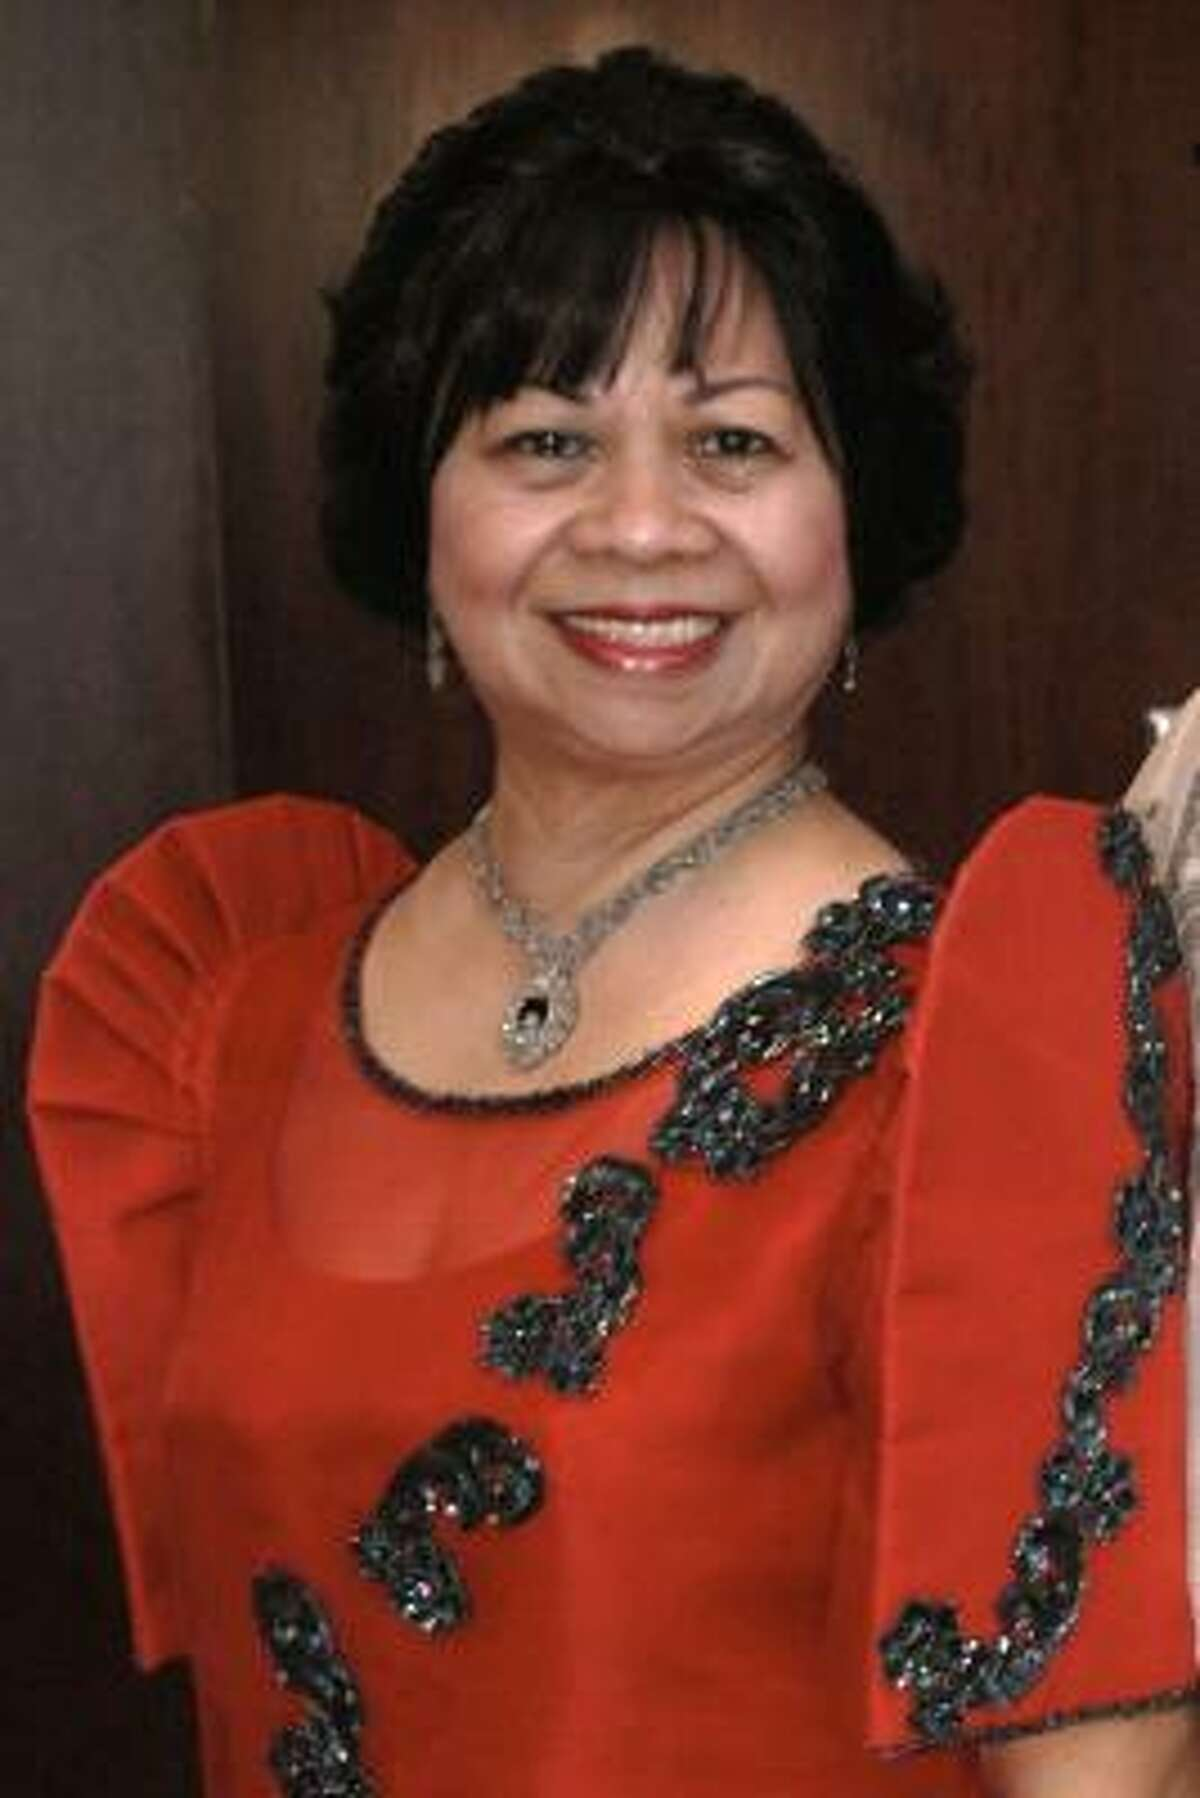 Community activist Norma Rieza Benzon raised scholarships, mobilized mobile medical drives and spearheaded relief efforts after catastrophes such as Hurricane Katrina.